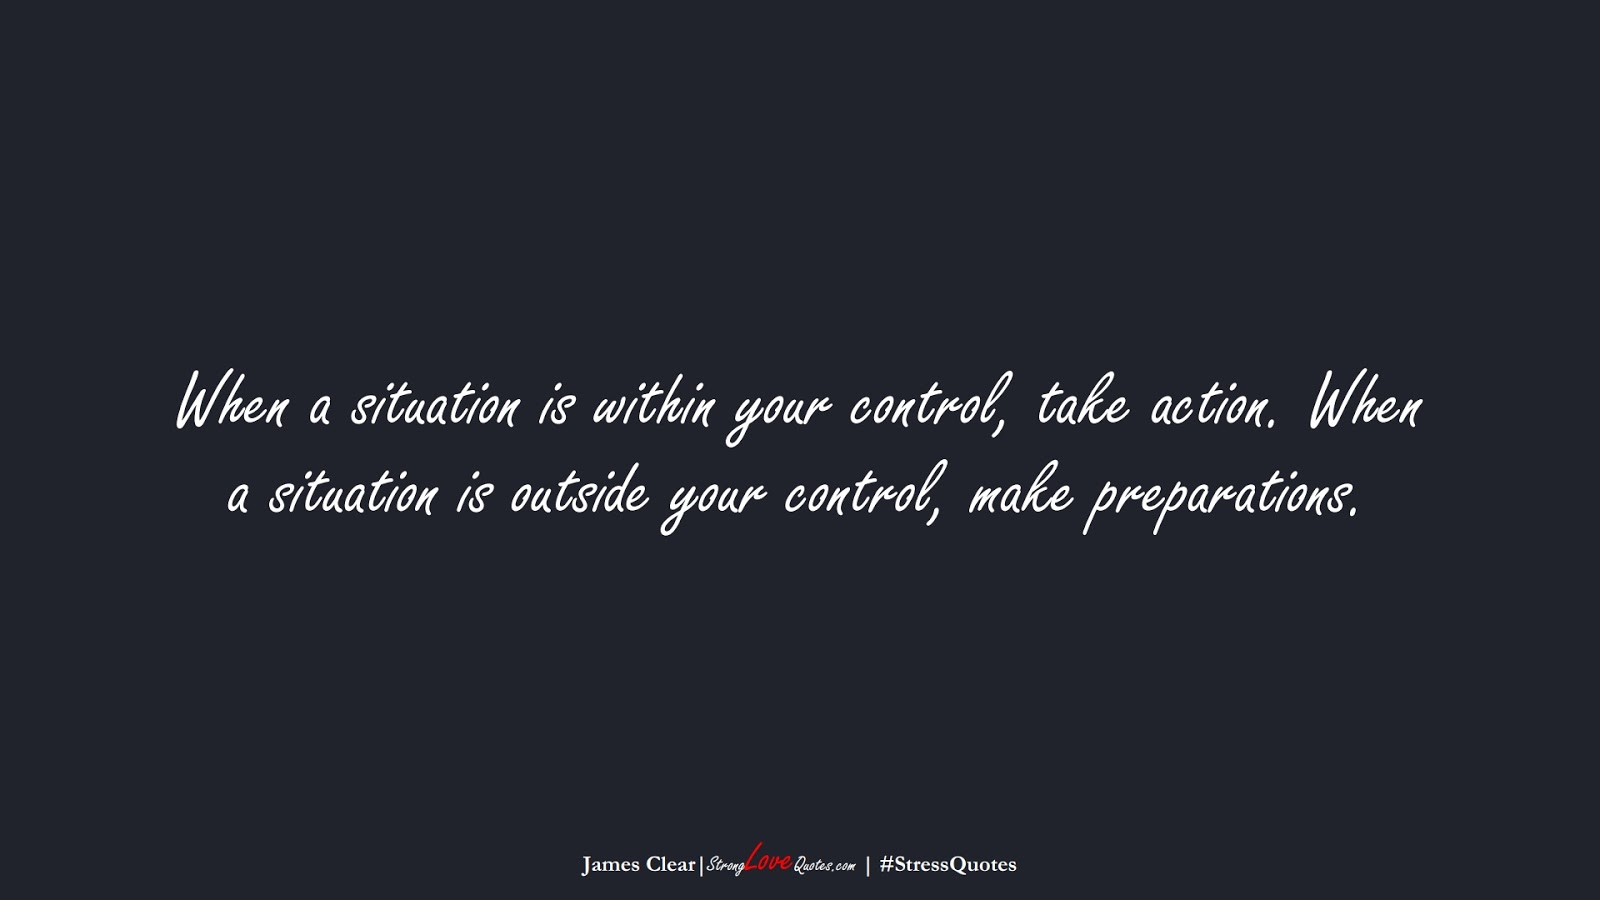 When a situation is within your control, take action. When a situation is outside your control, make preparations. (James Clear);  #StressQuotes